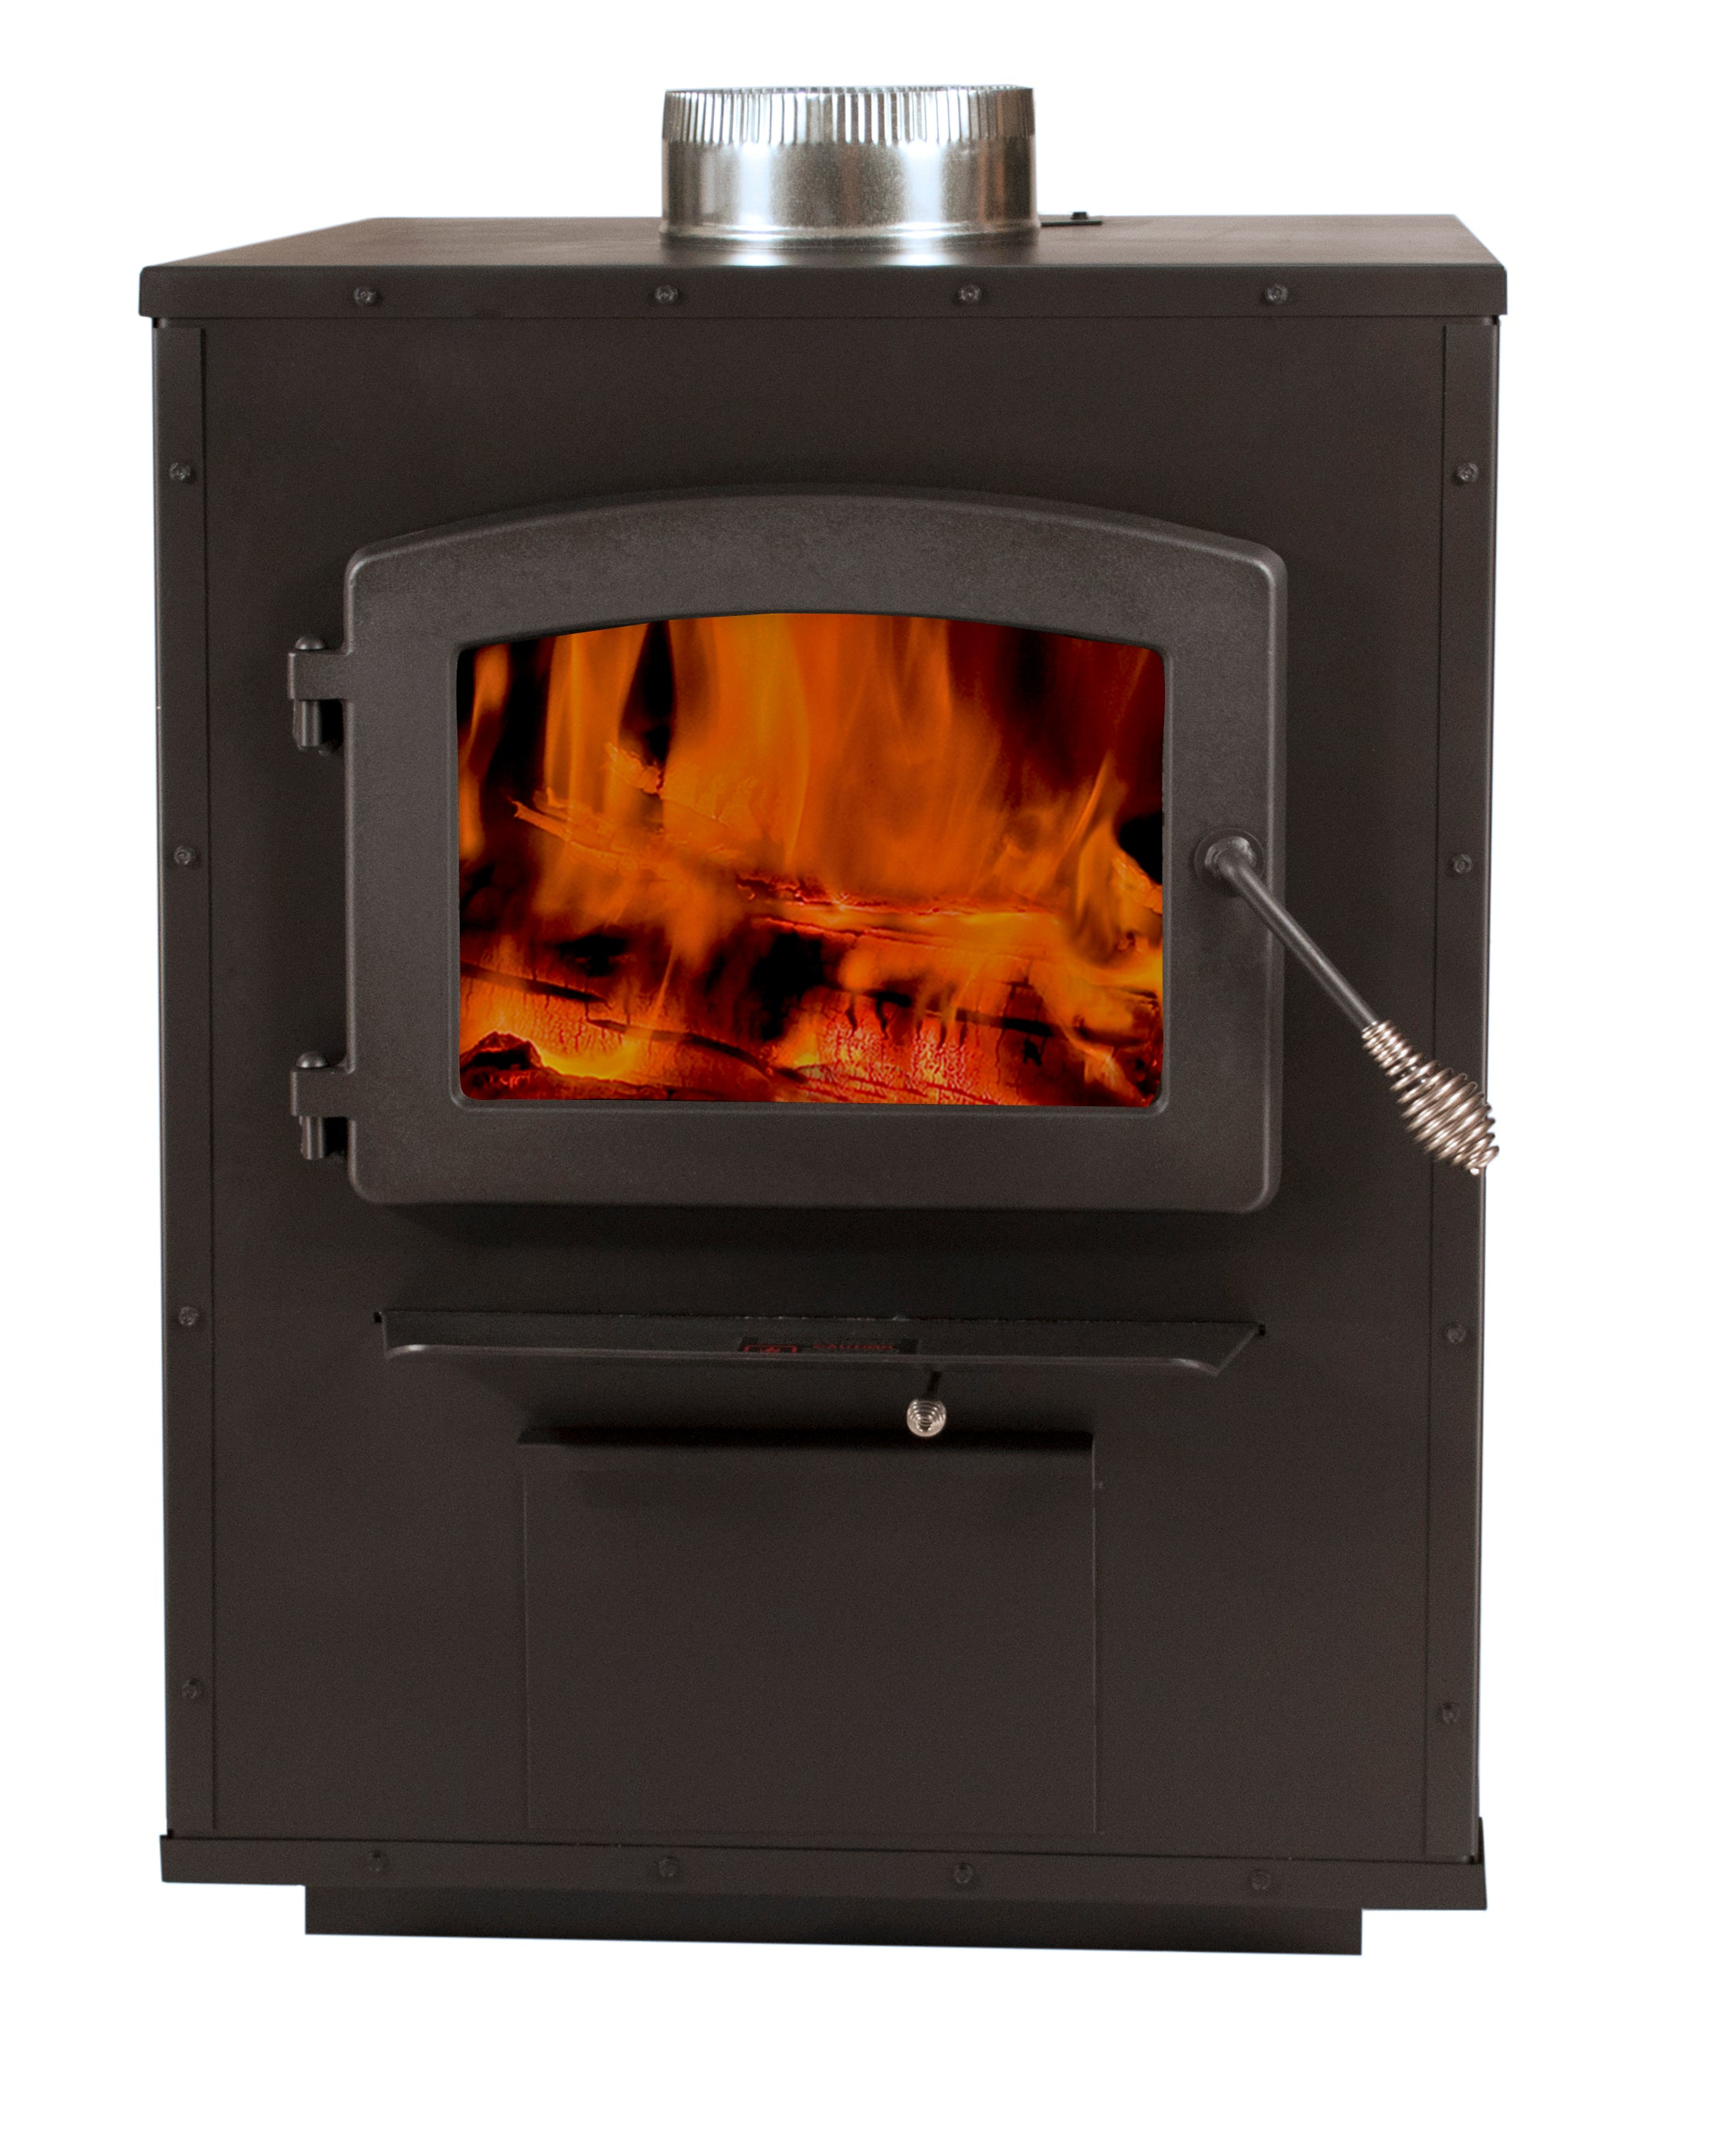 Heating furnace long burning with his own hands. Heating and cooking stoves 100